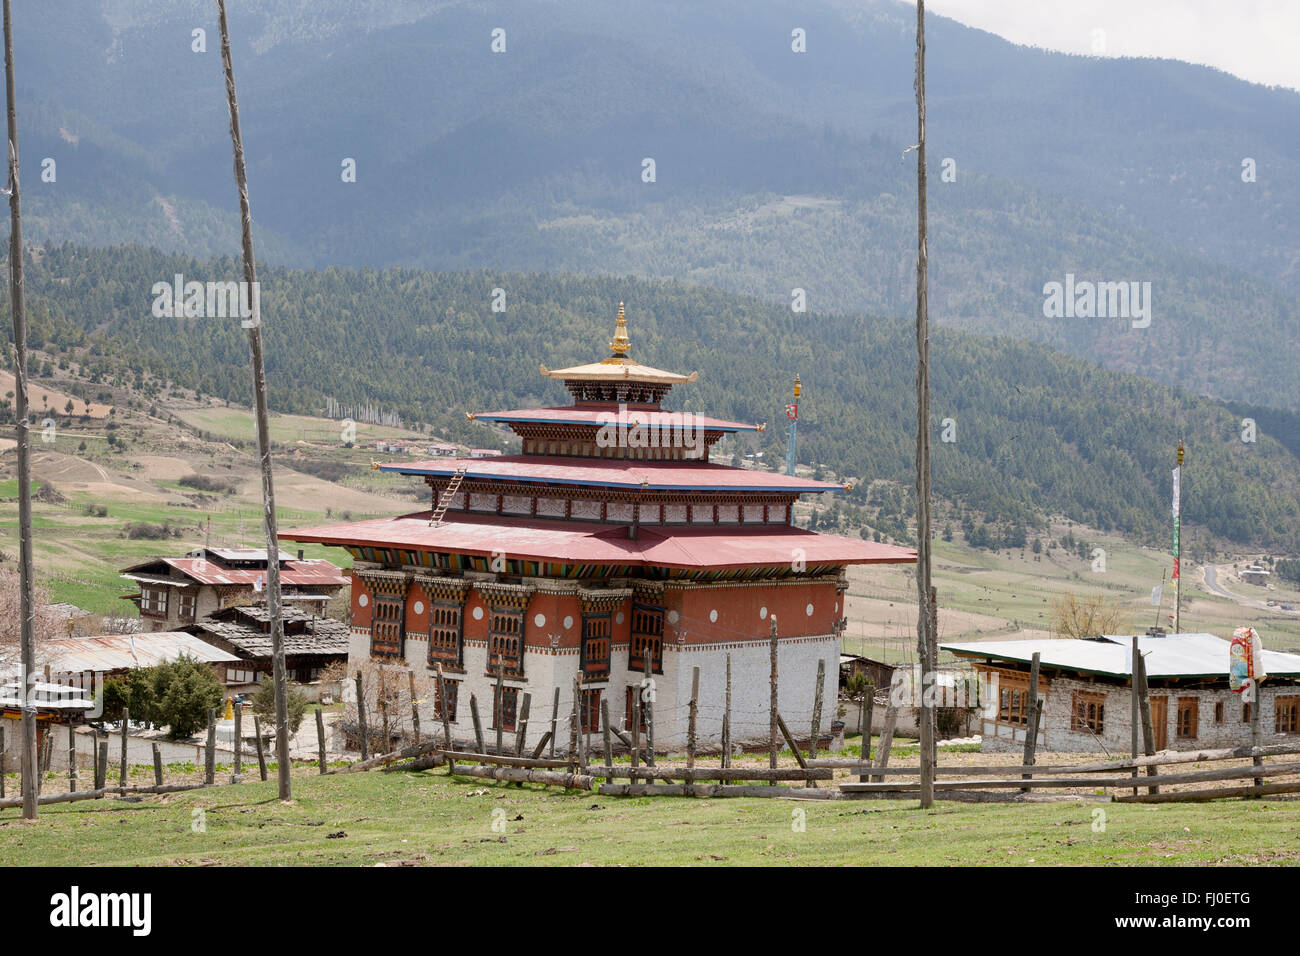 Ura Lhakhang, in central Bhutan - Stock Image